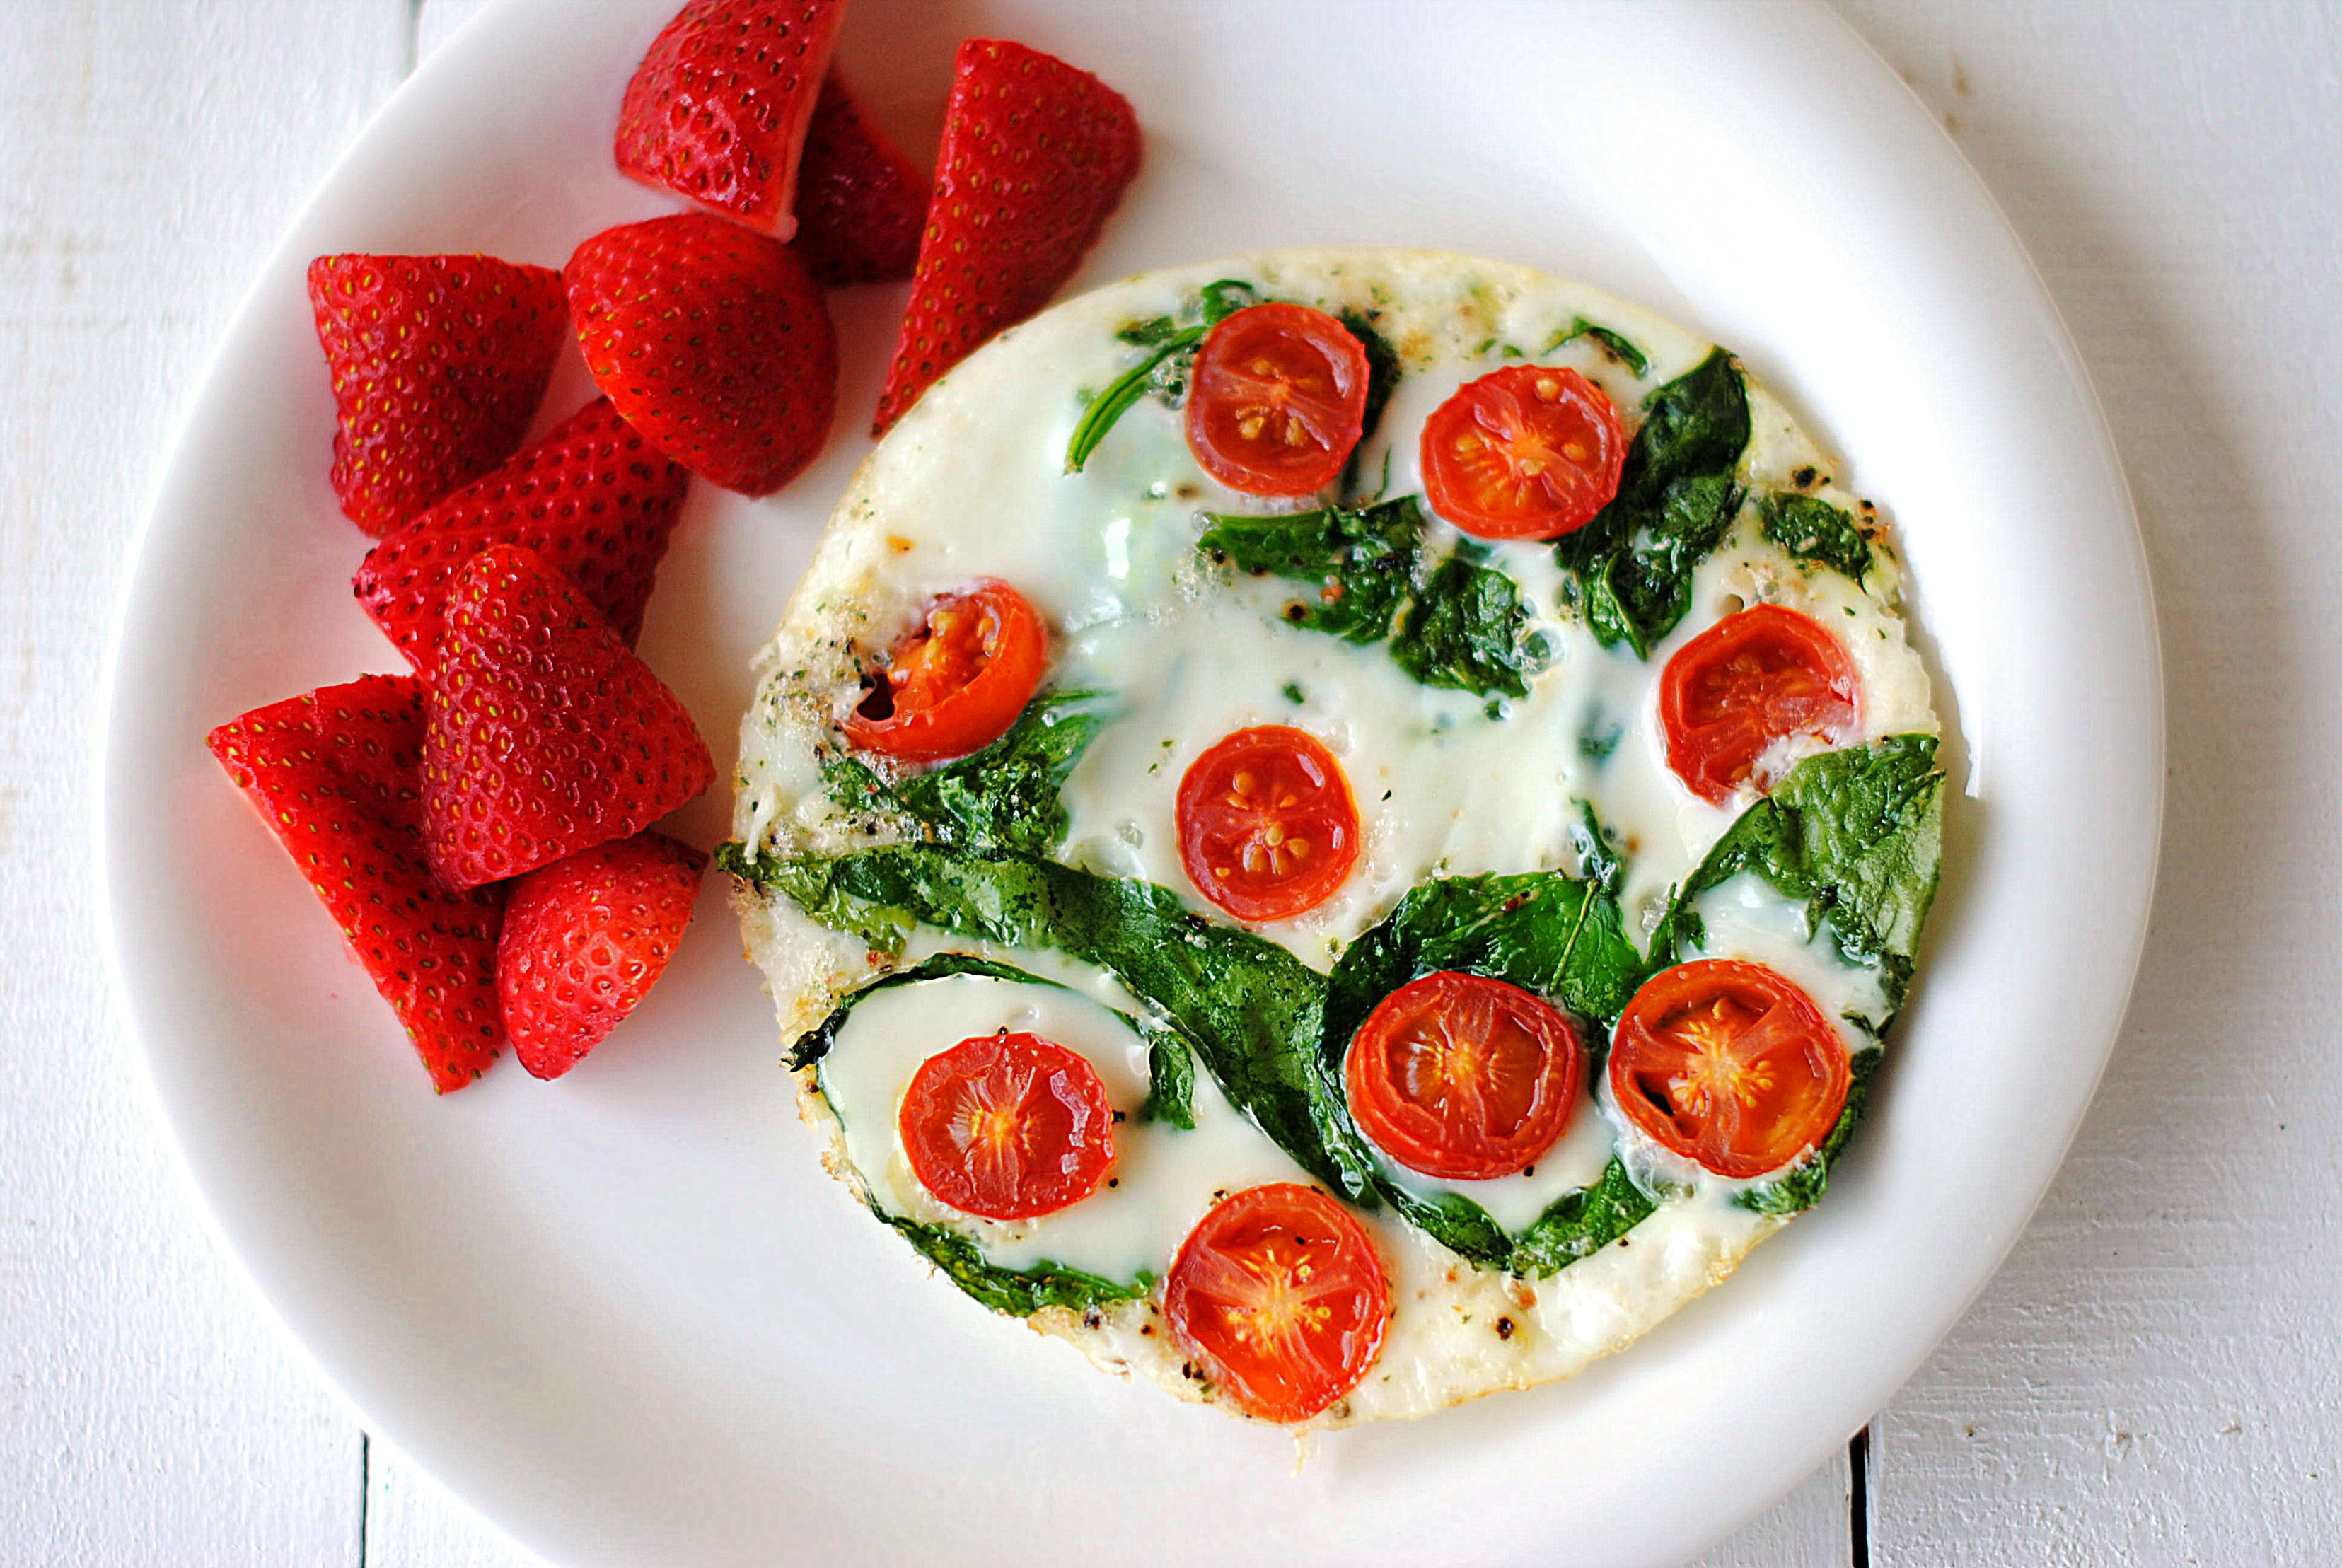 Spinach and Egg White Omelet - Eat Yourself Skinny